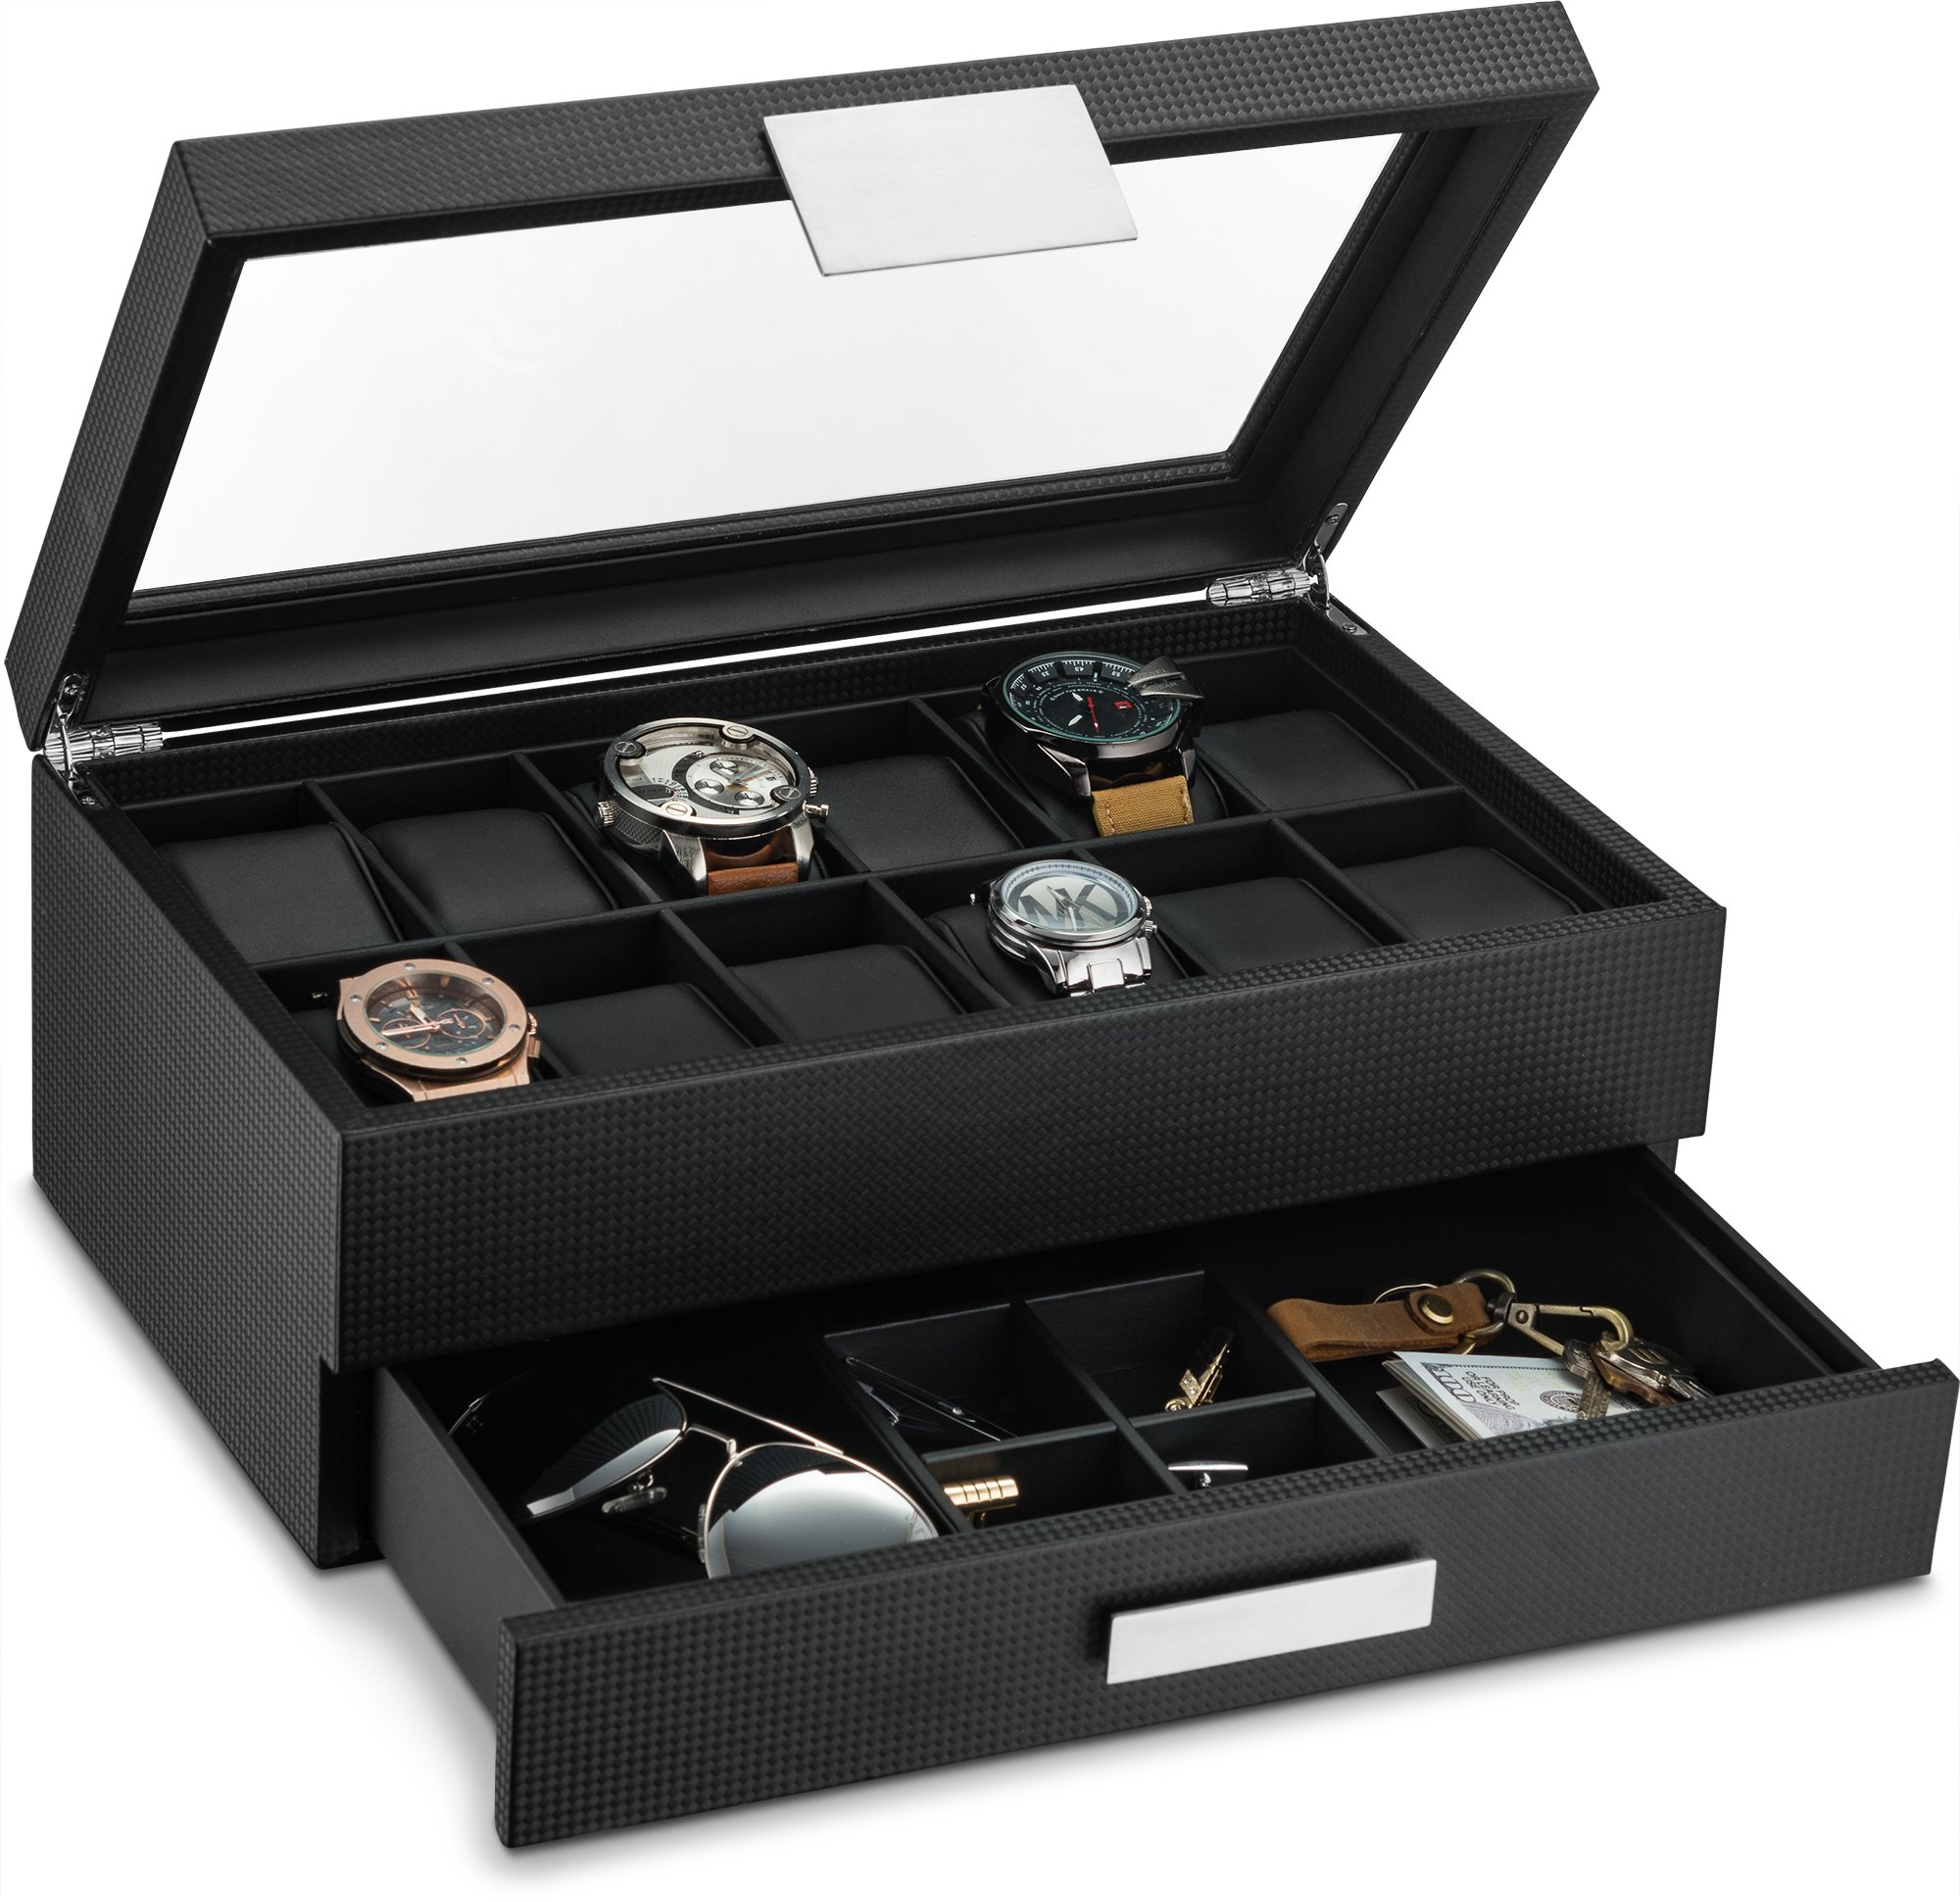 The watch box